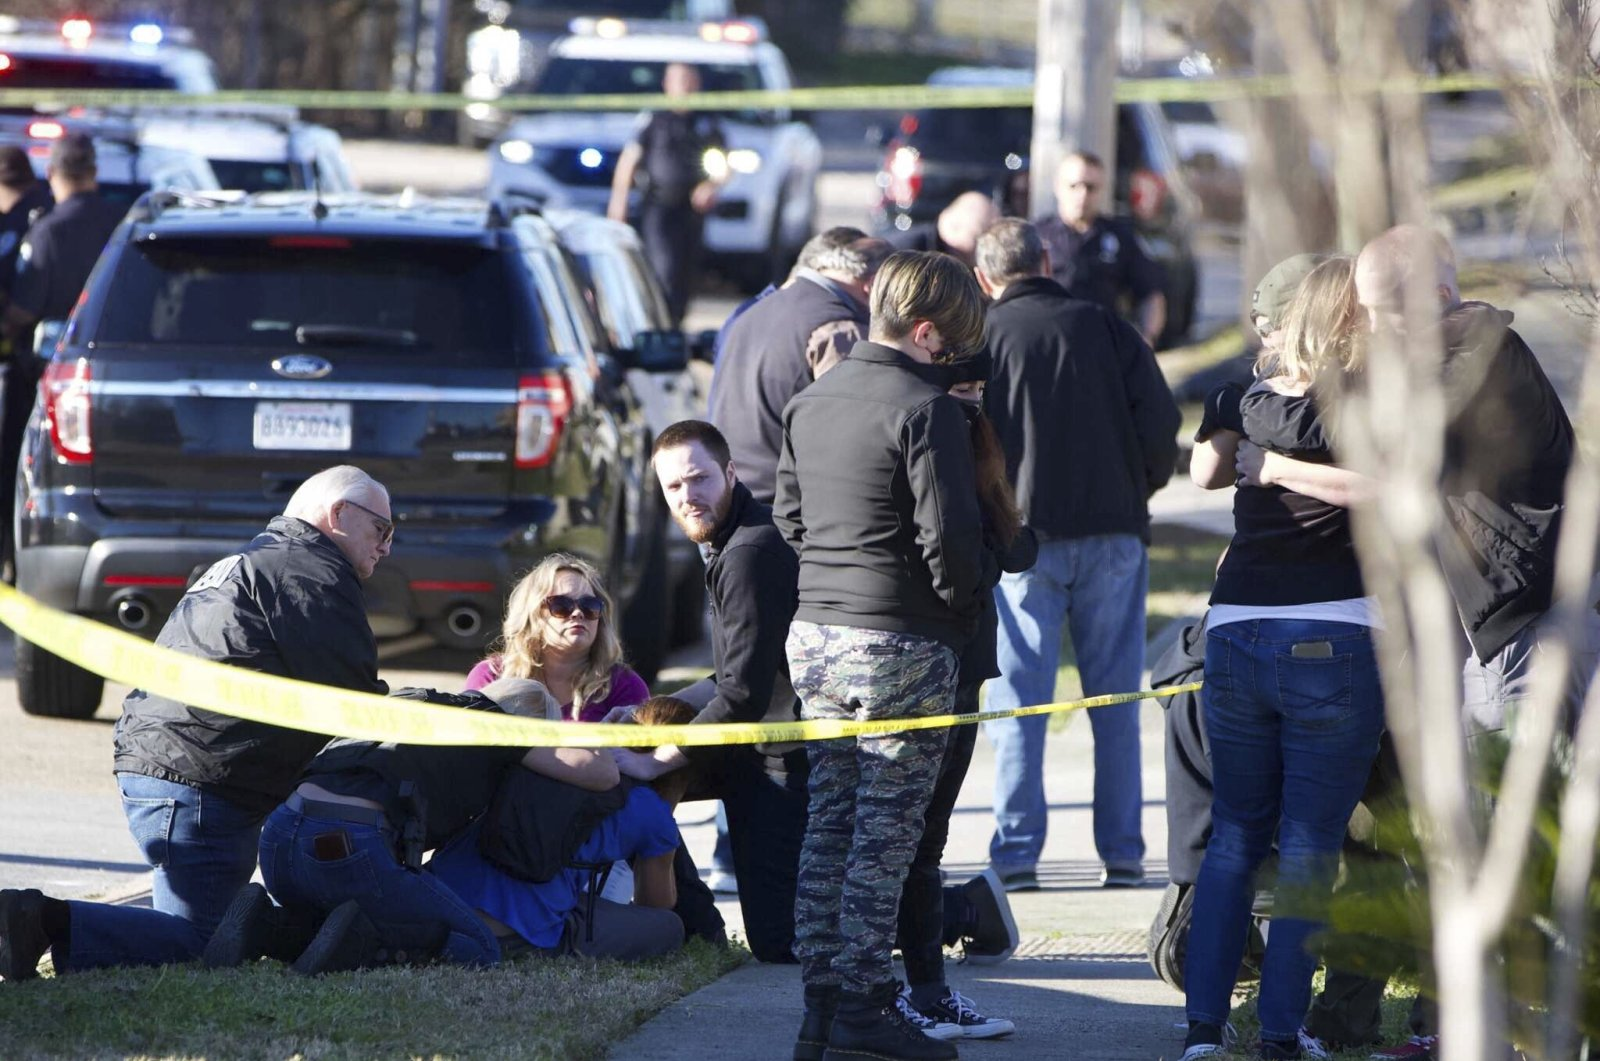 People are comforted by law enforcement as the Jefferson Parish Sheriff's Office deputies investigate a shooting at the Jefferson Gun Outlet in Metairie, Louisiana, U.S., Feb. 20, 2021. (AP Photo)